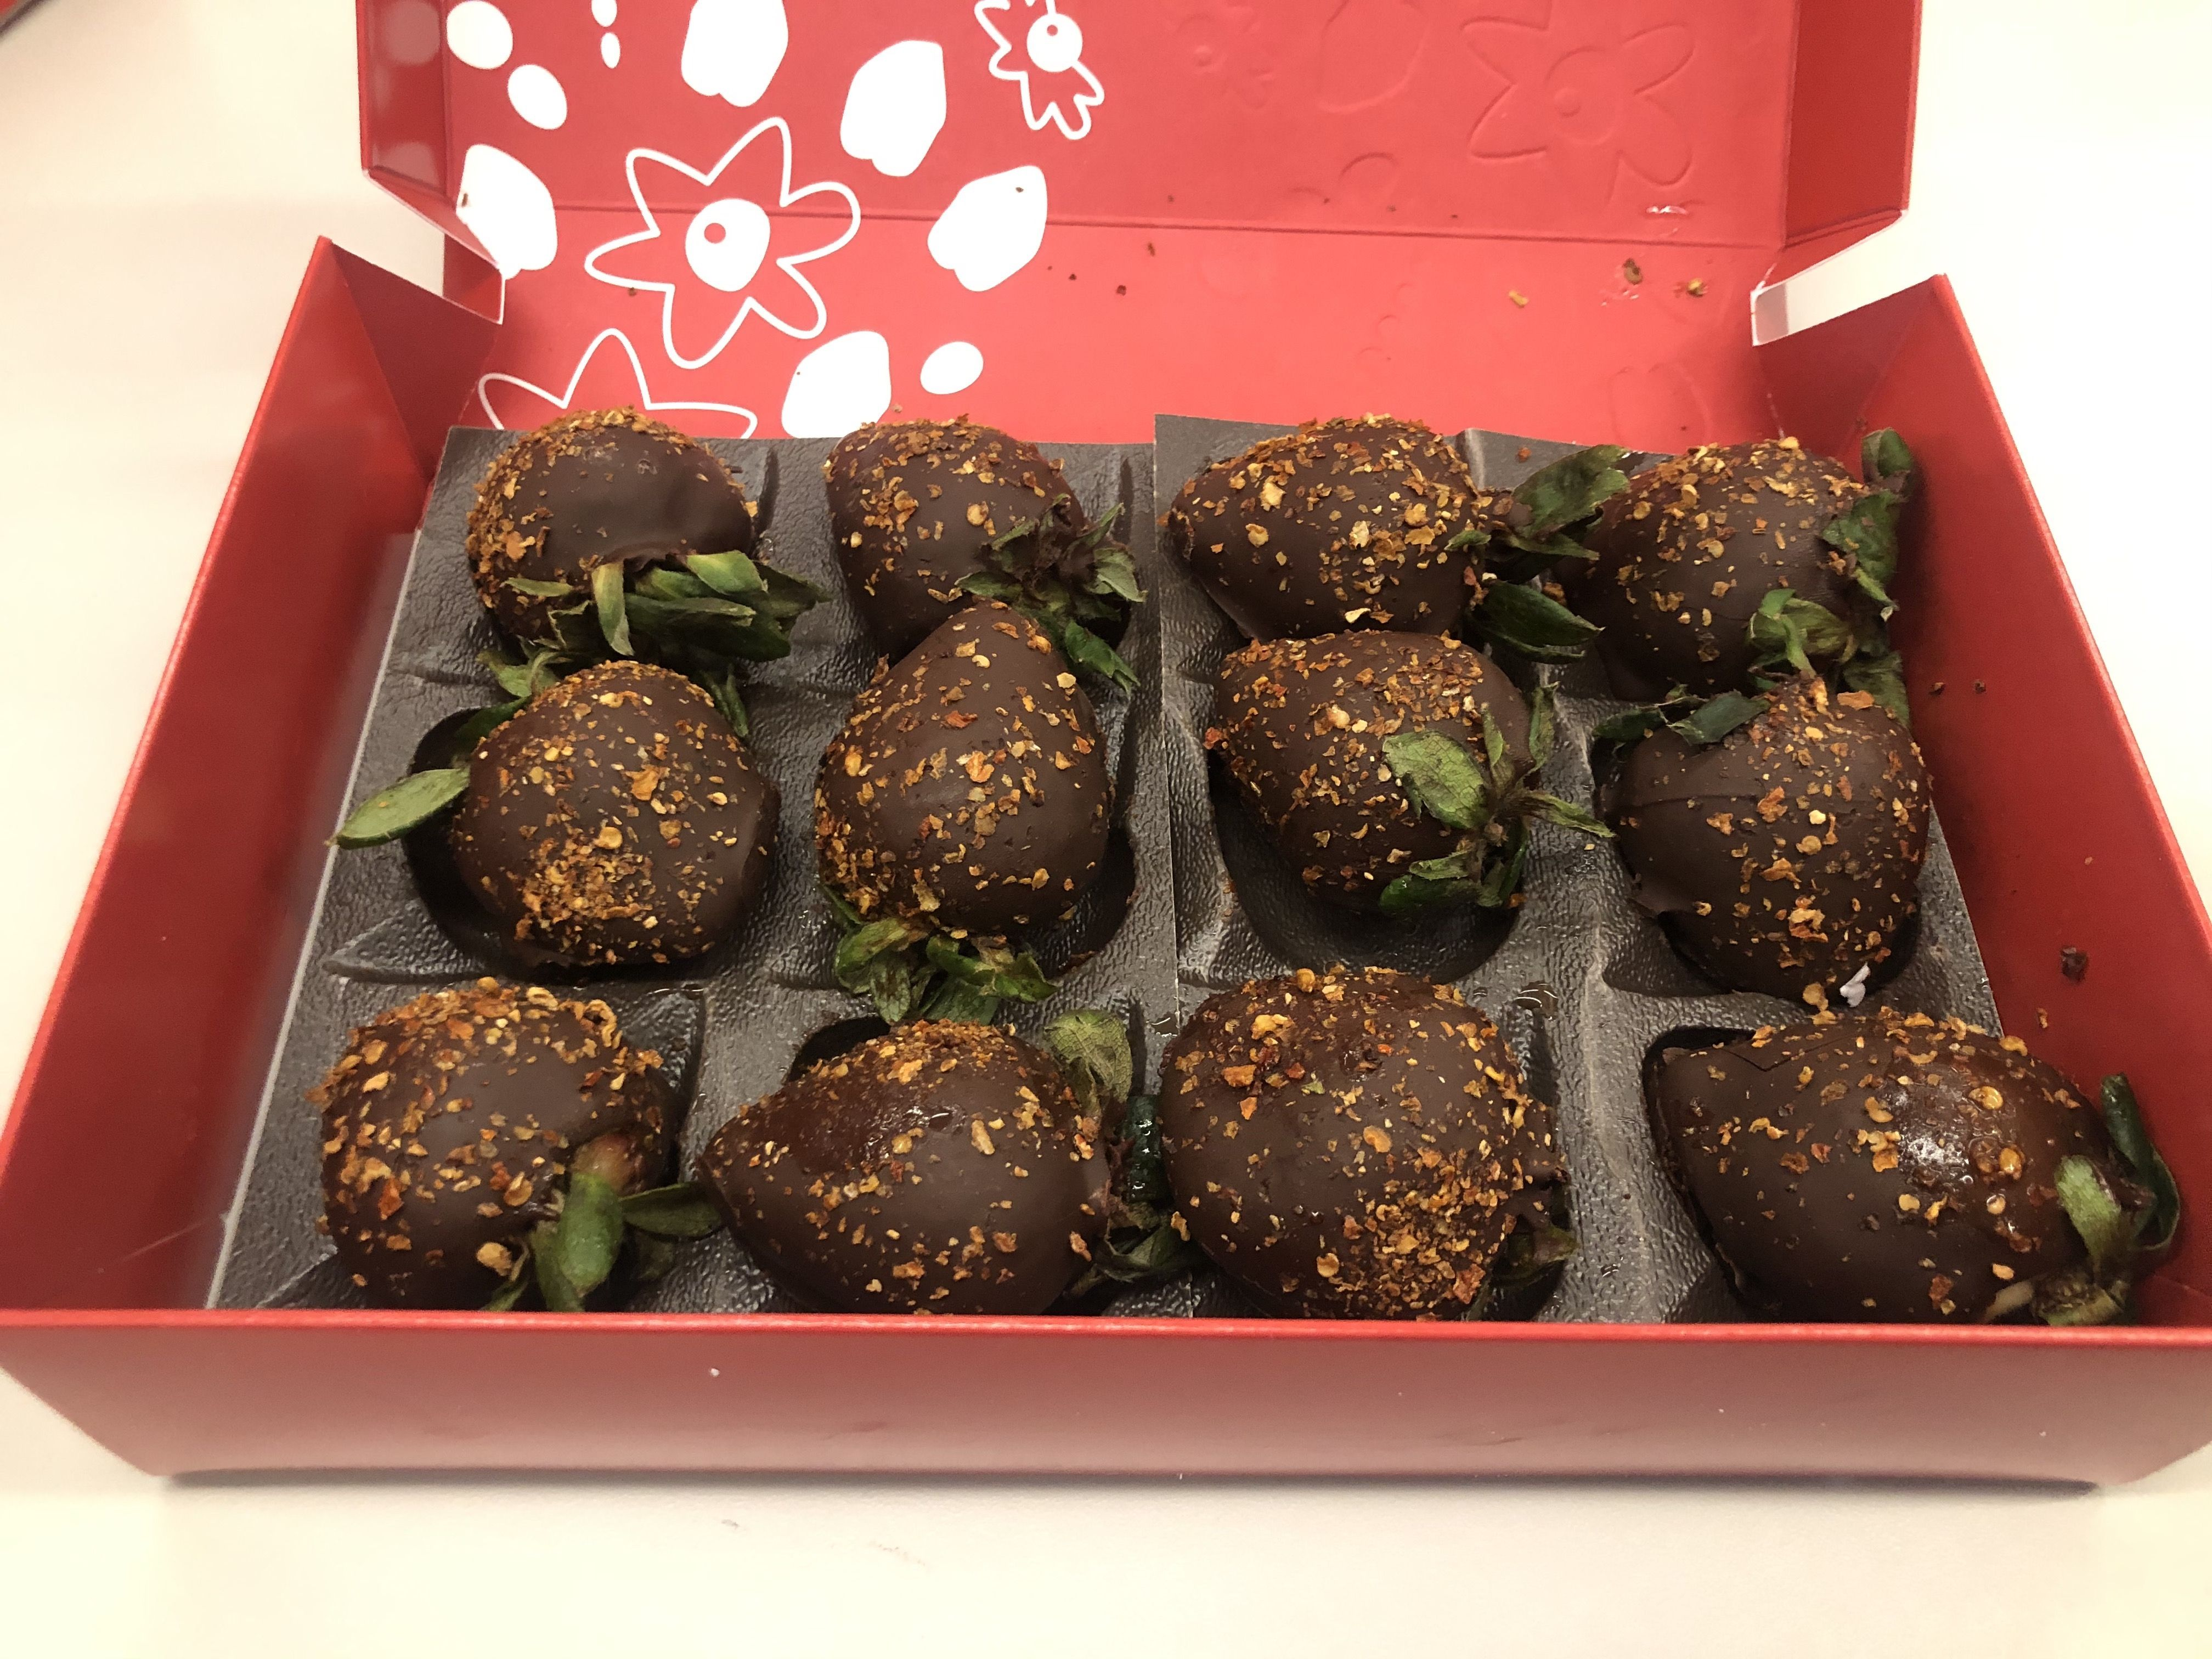 Edible Arrangements Has Chocolate Covered Strawberries Topped With Ghost Pepper Flakes